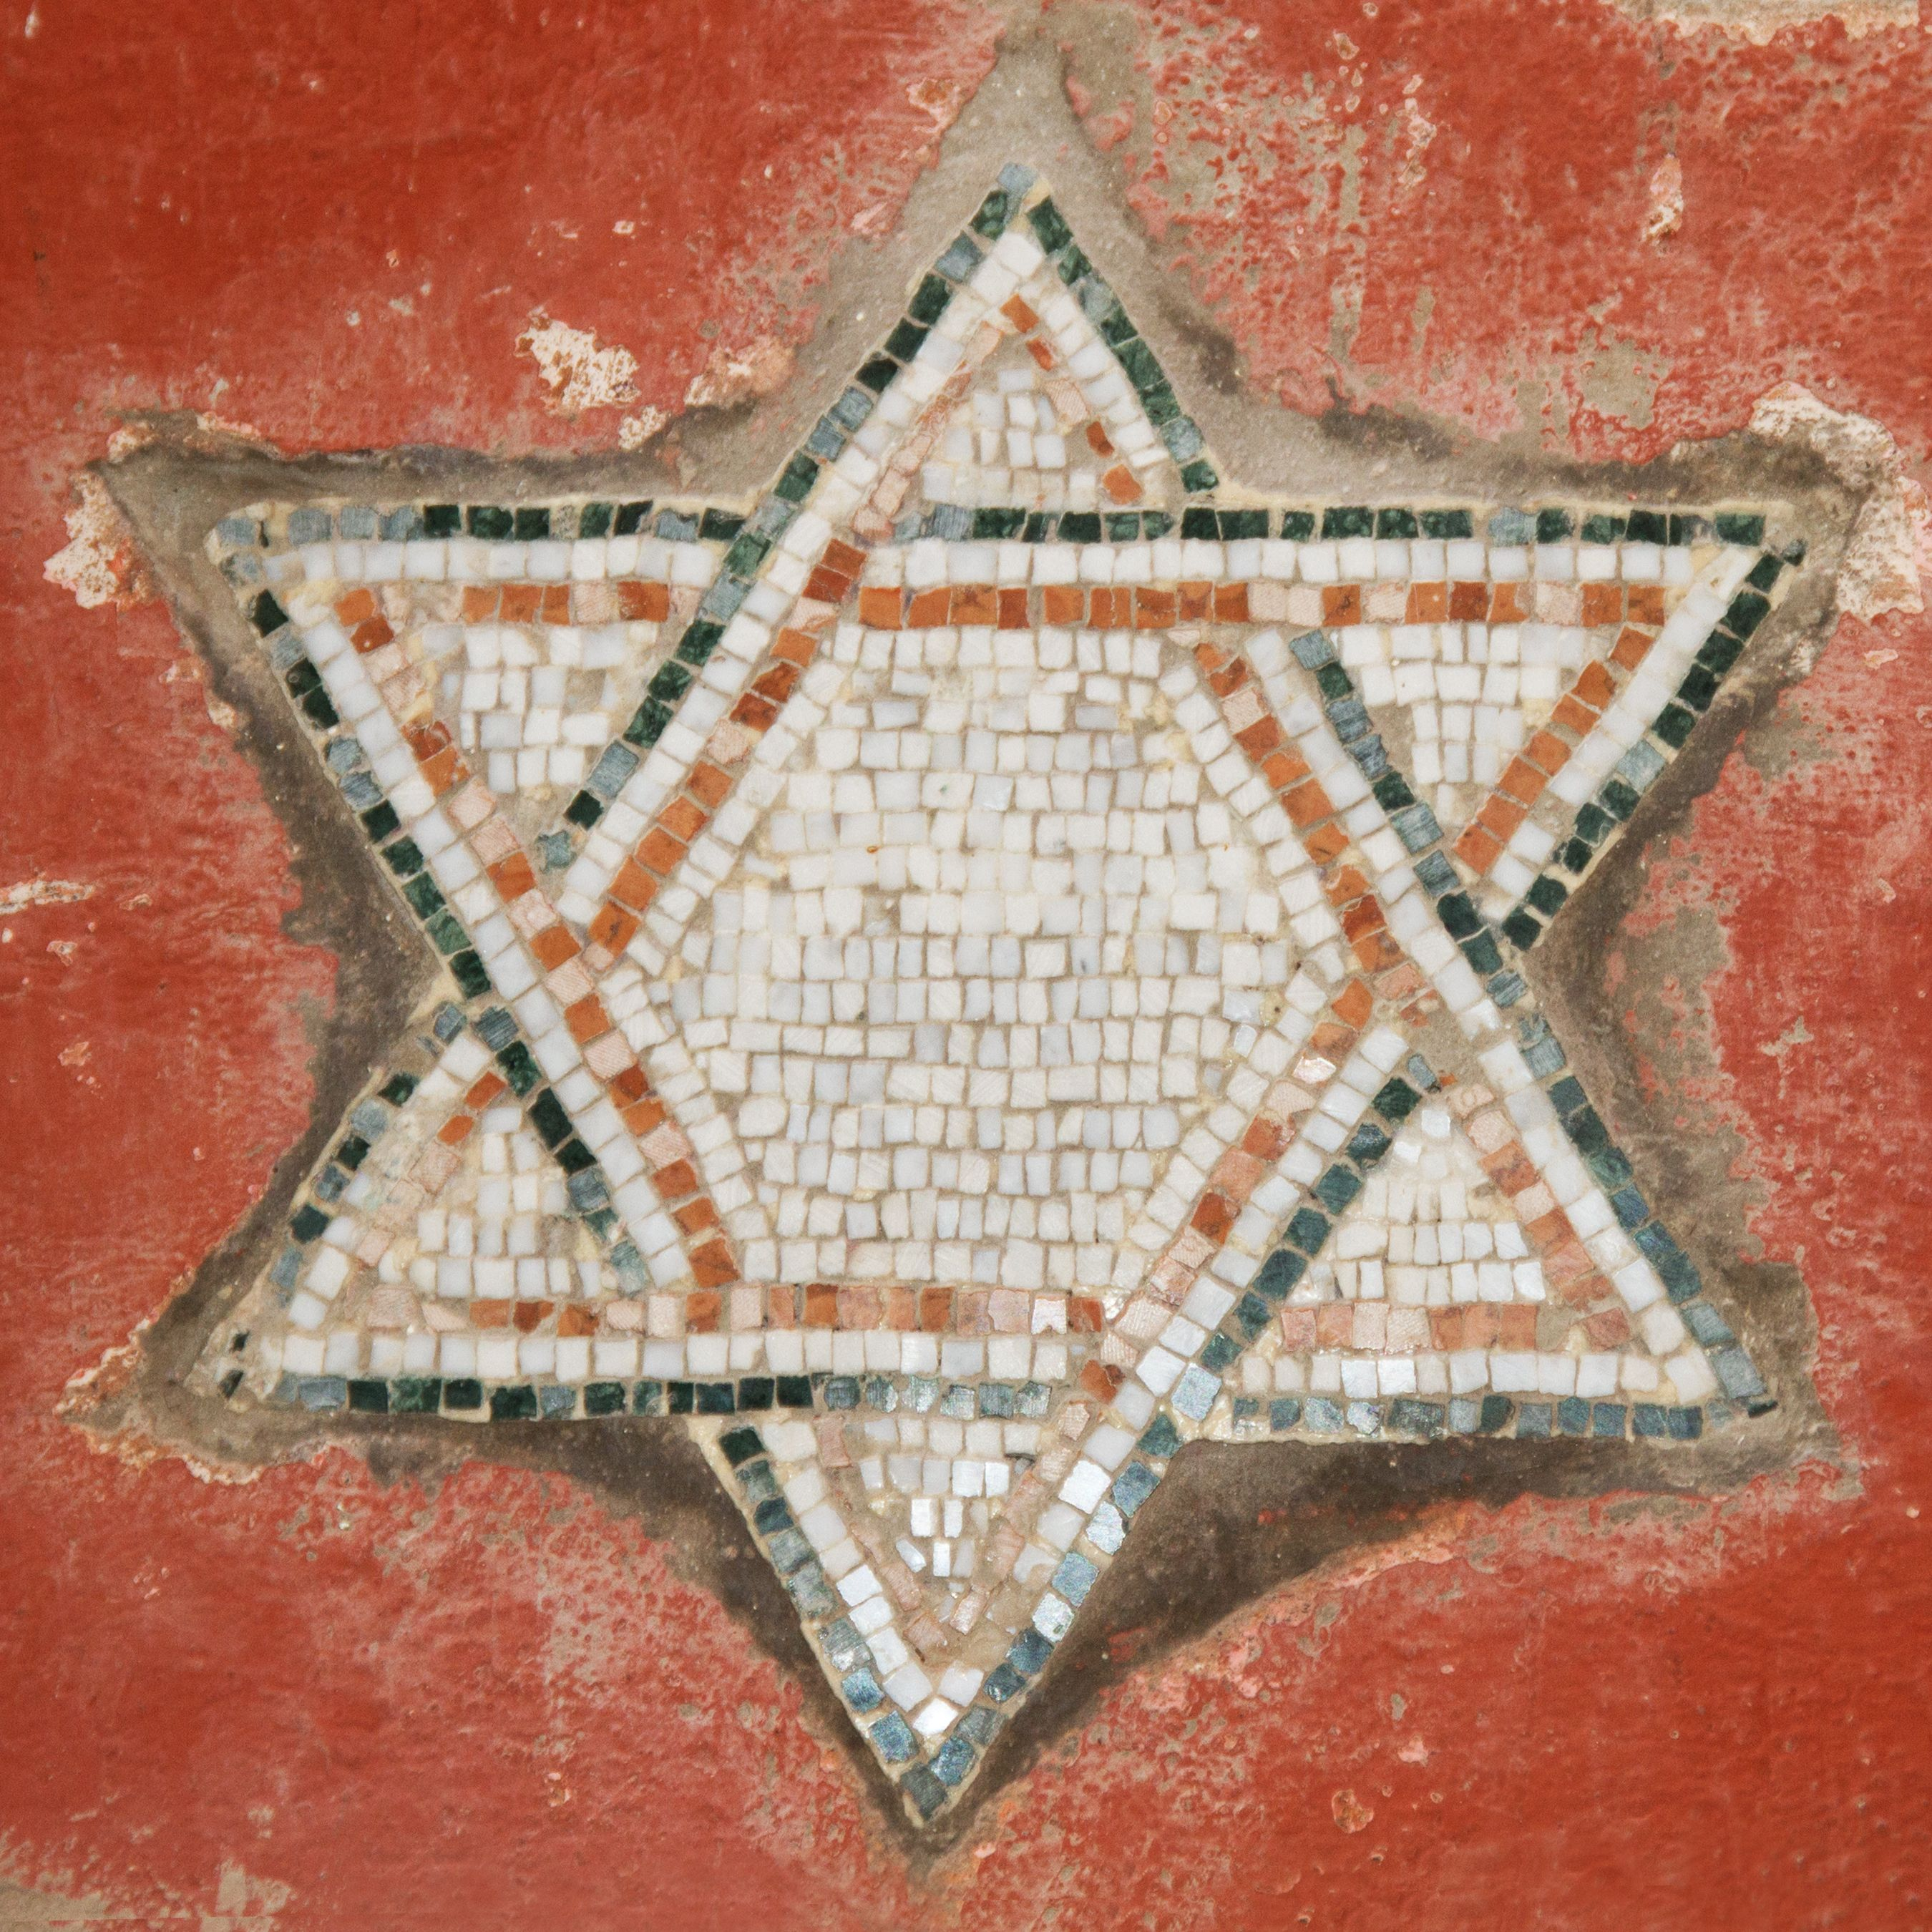 The Dodge Star And Jewish History: On A Wall In The Jewish Quarter Of Rome. The Jewish